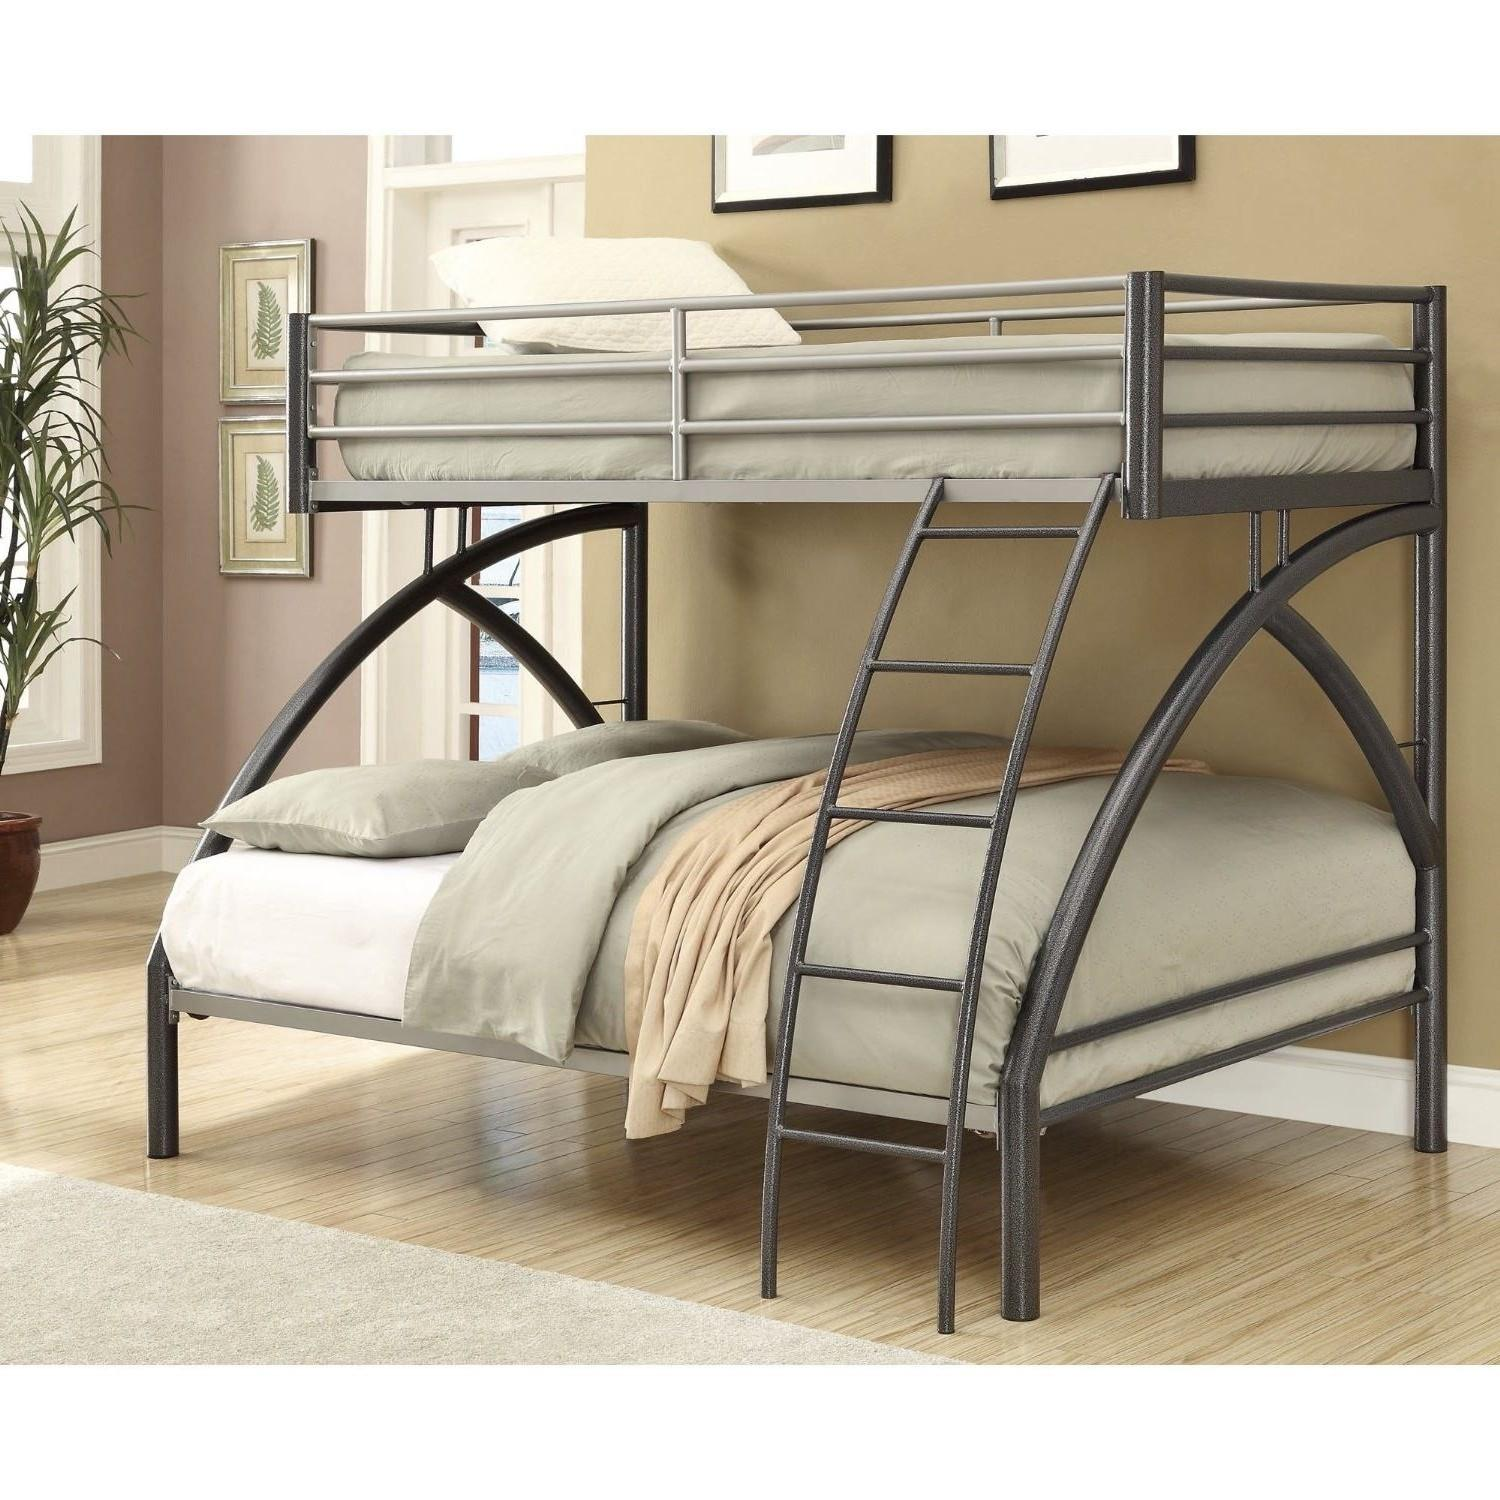 Twin Over Full Steel Bunk Bed in Gunmetal/Silver Finish - image-1